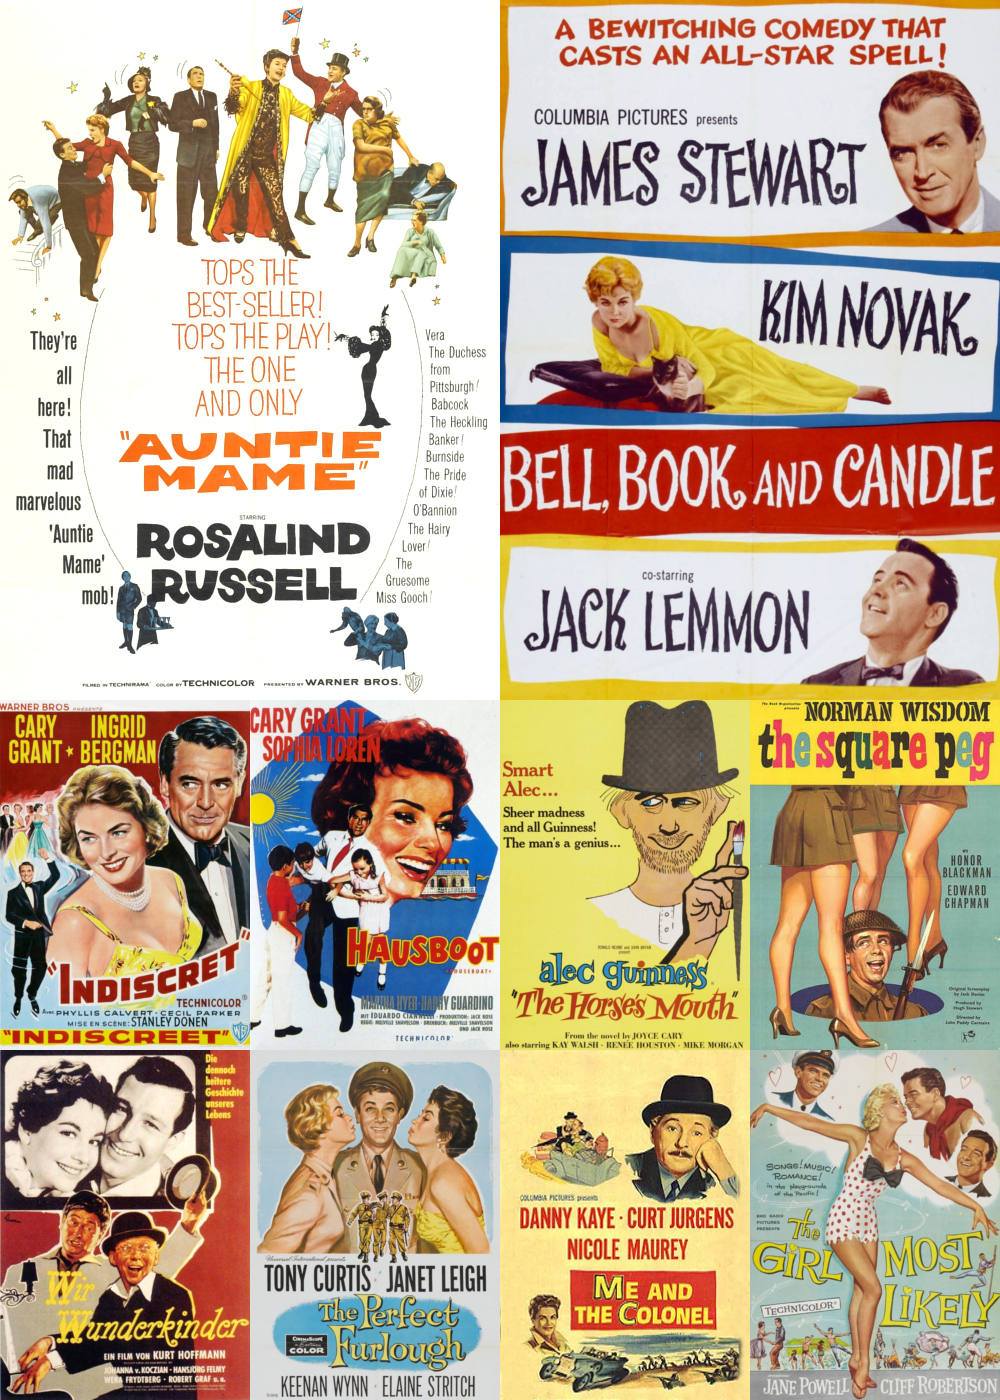 Top 1-10 Comedy Movies 1958